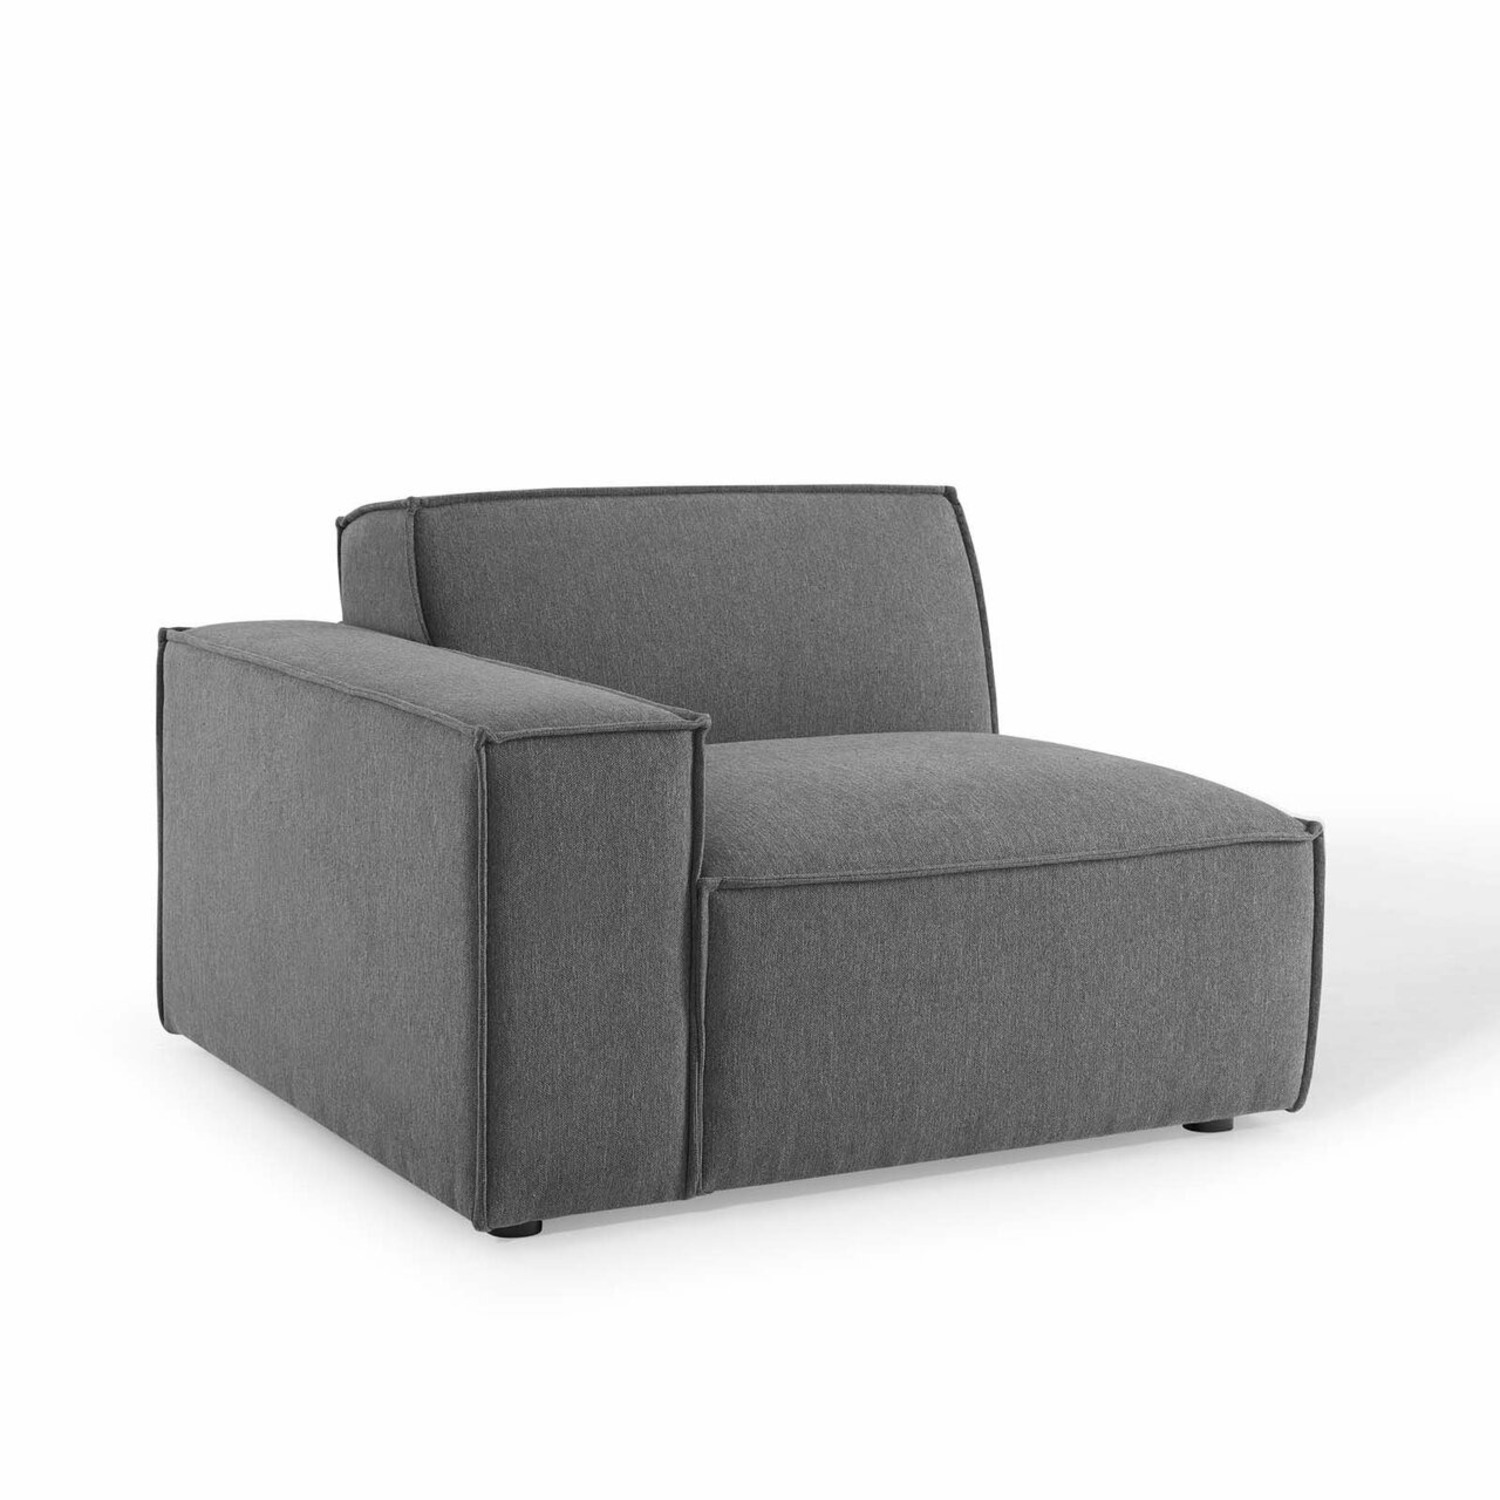 4-Piece Sectional Sofa In Charcoal Upholstery - image-5